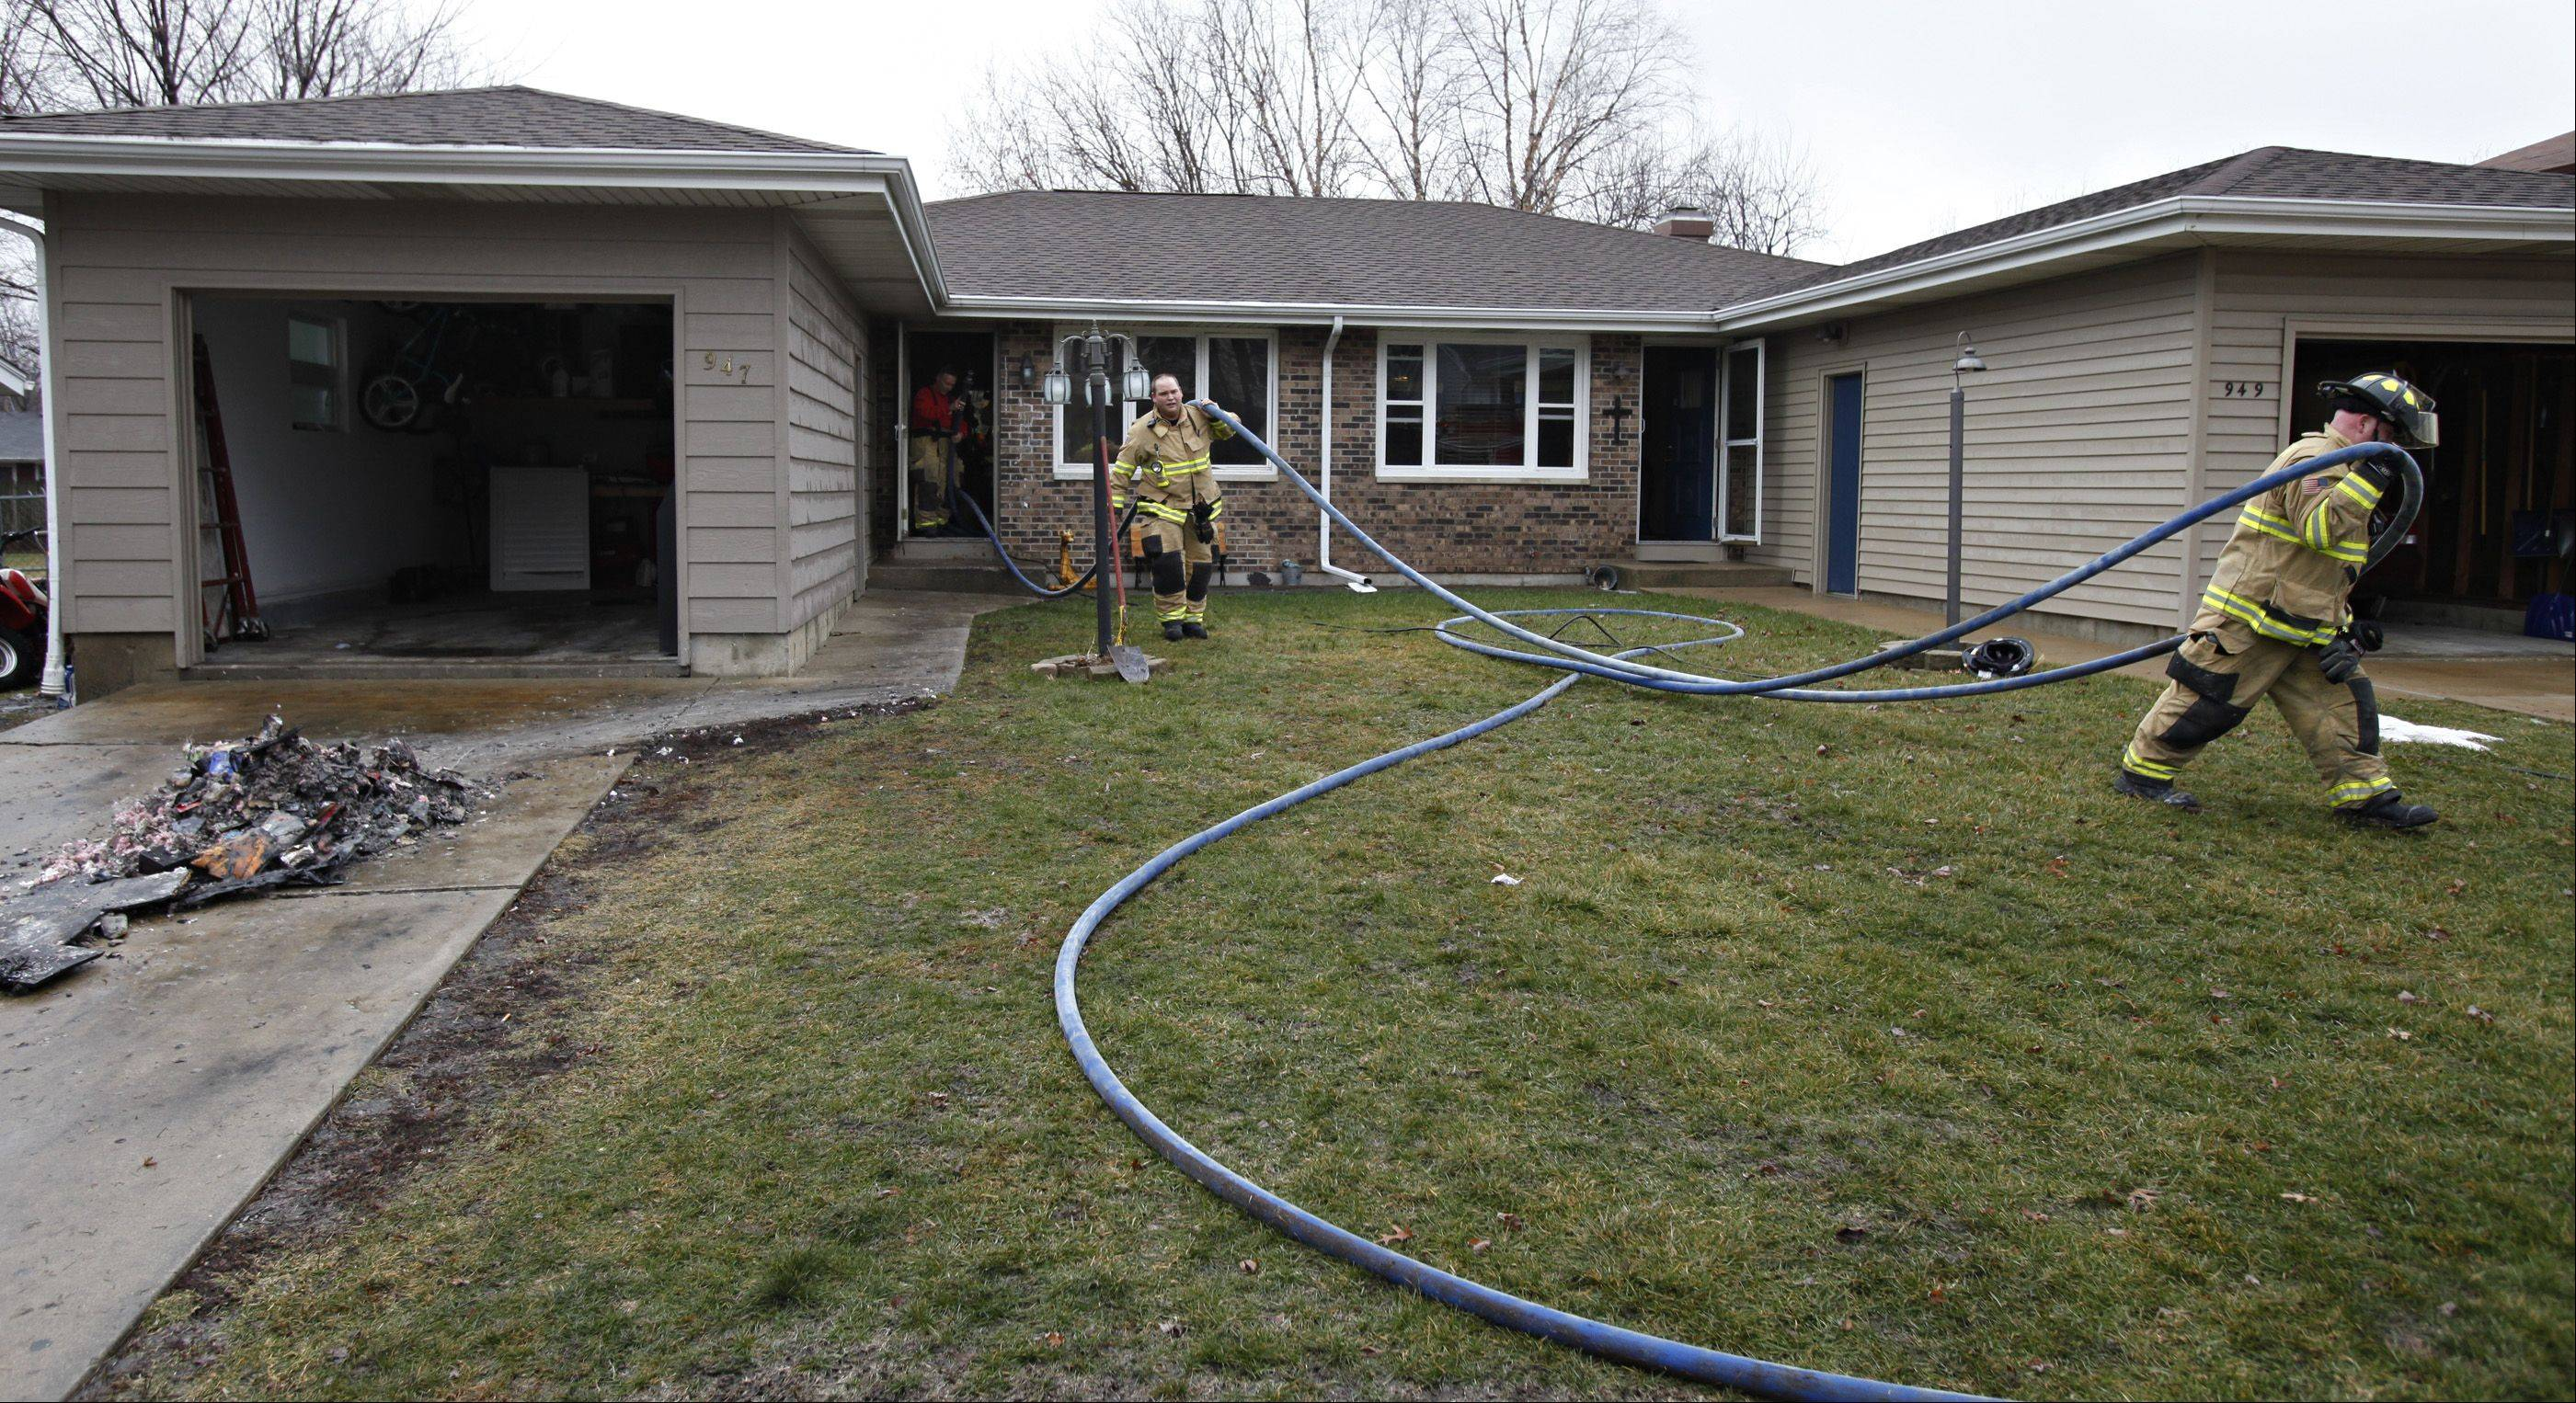 Two South Elgin firefighters bring a hose line out of the home Monday after helping to extinguish a fire on the 900 block of Kane Street.